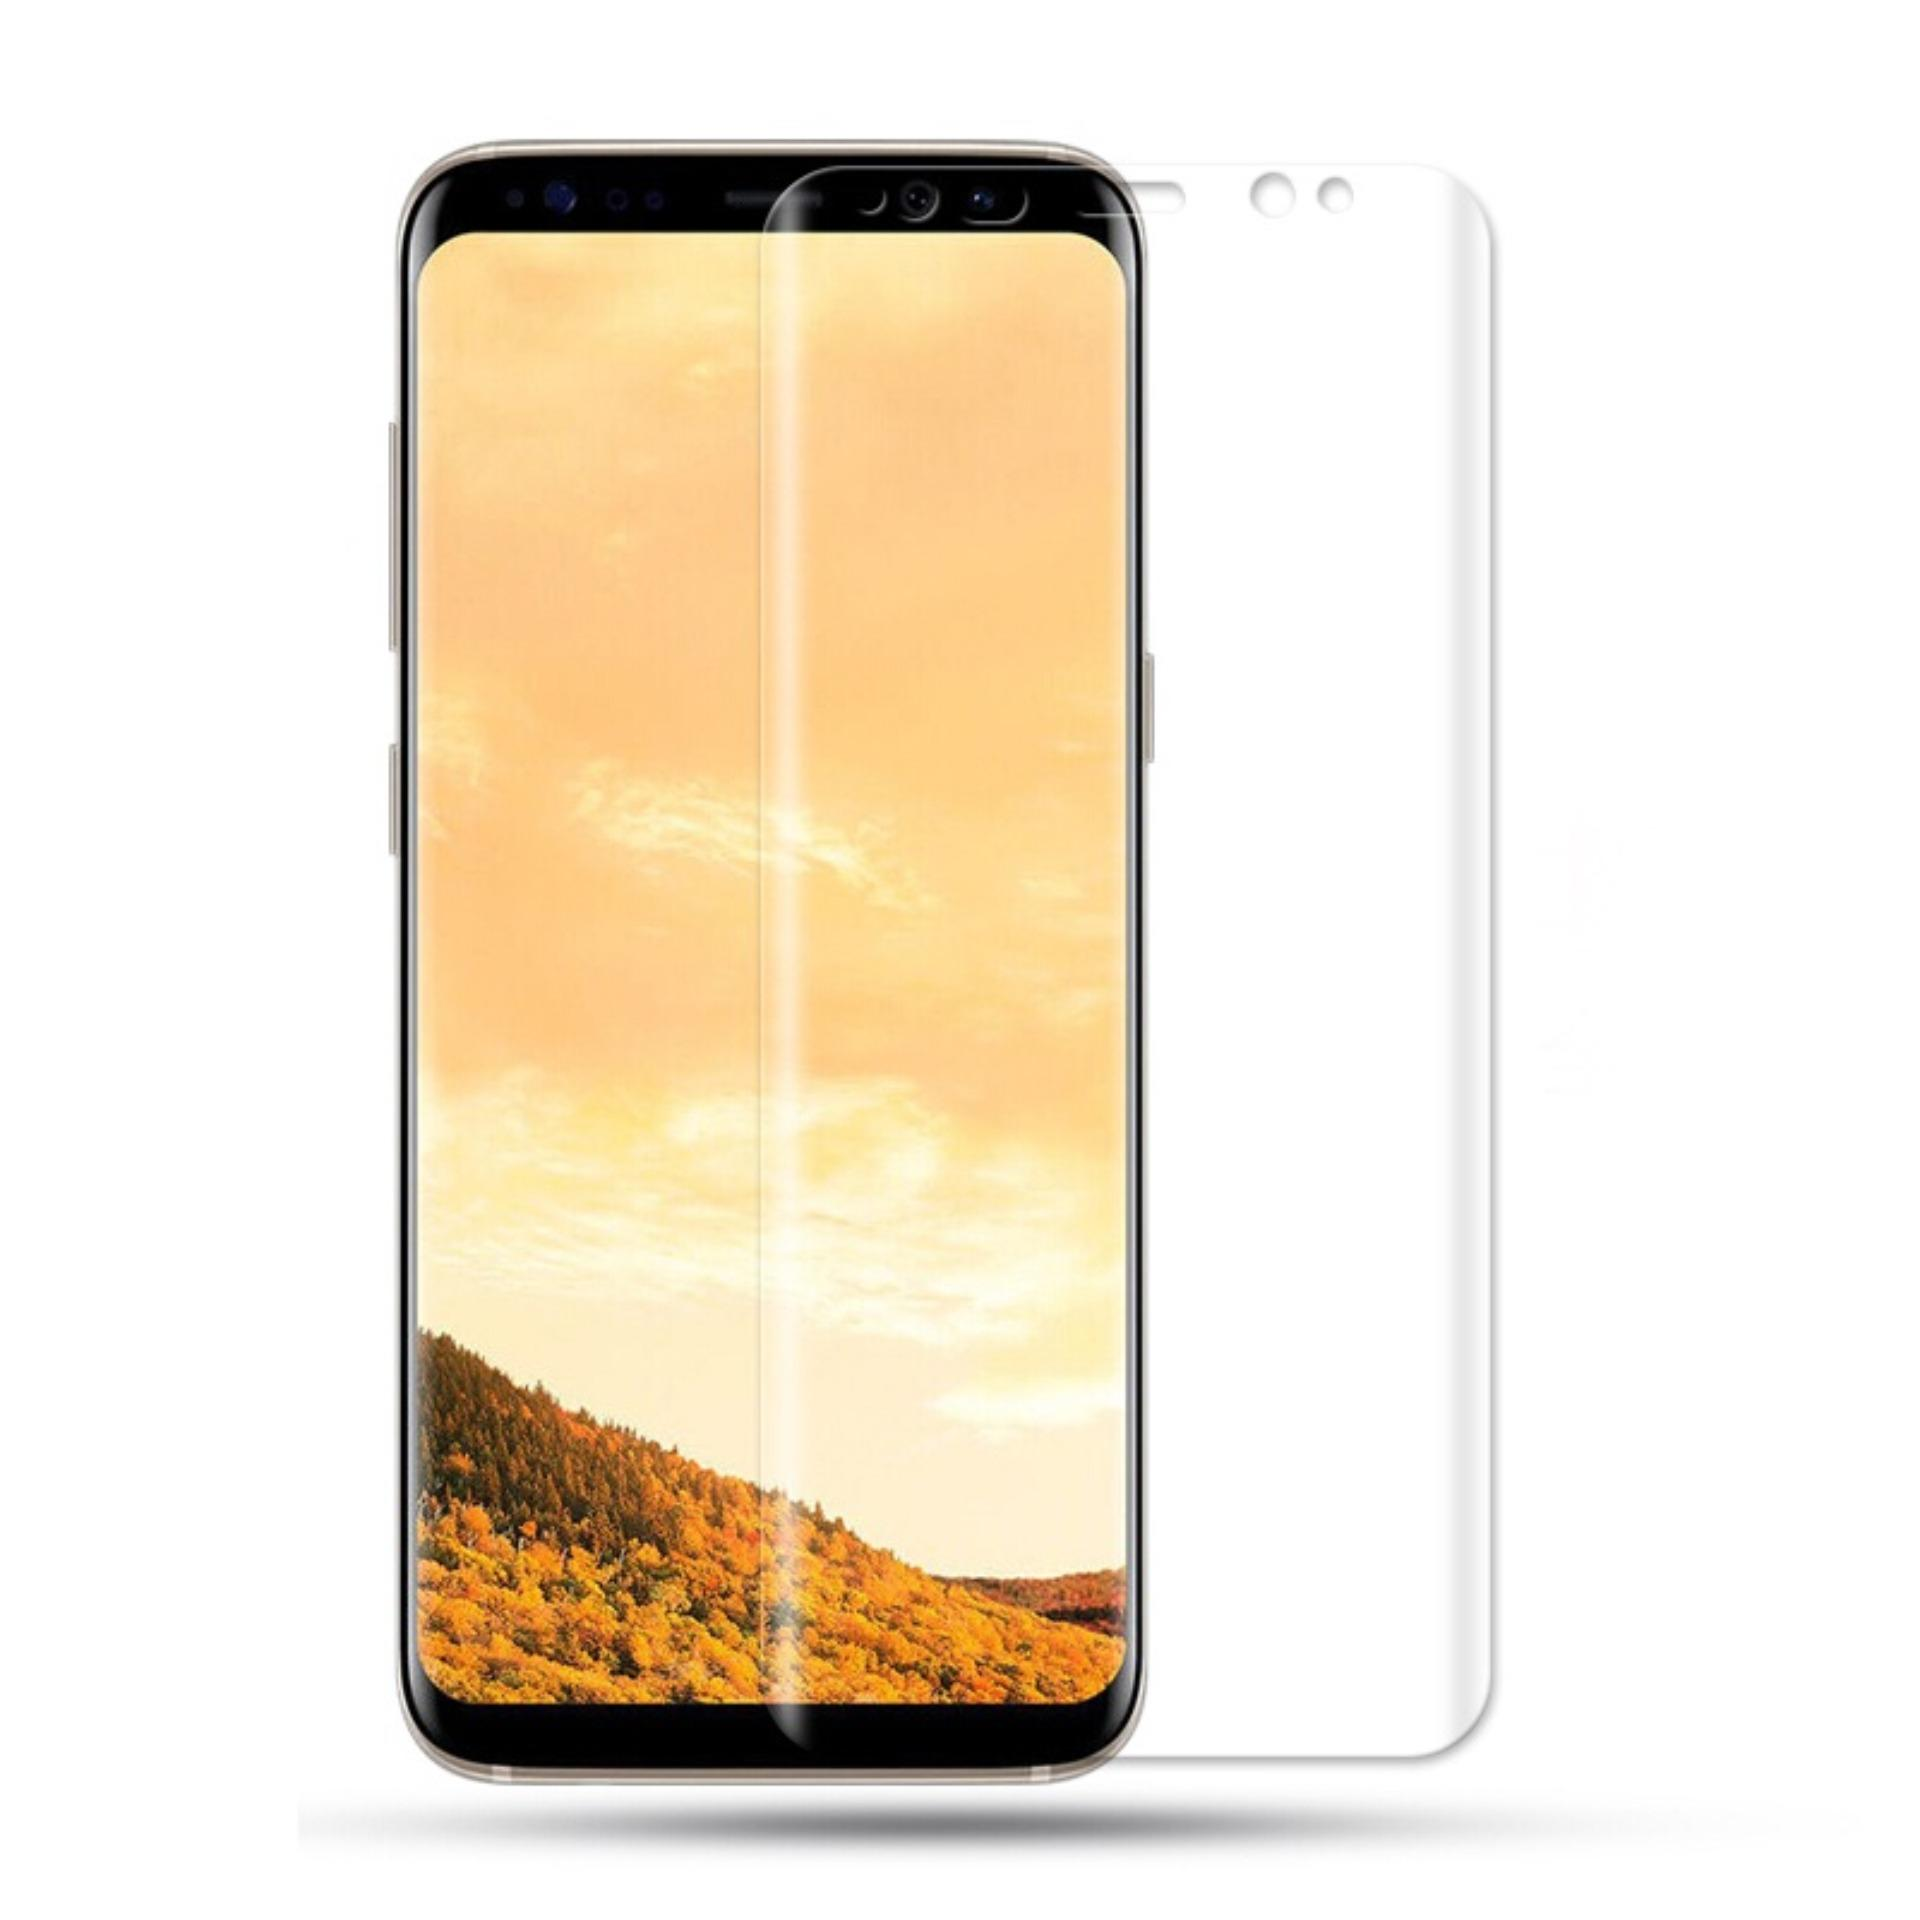 Harga Jual Tempered Glass Warna Samsung Galaxy A8 Plus 2018 Anti Asus Zenfone Max Pro M1 Zb602kl Color 25d Full Cover S9 Screenguard Pet Screen Protector Not Clear